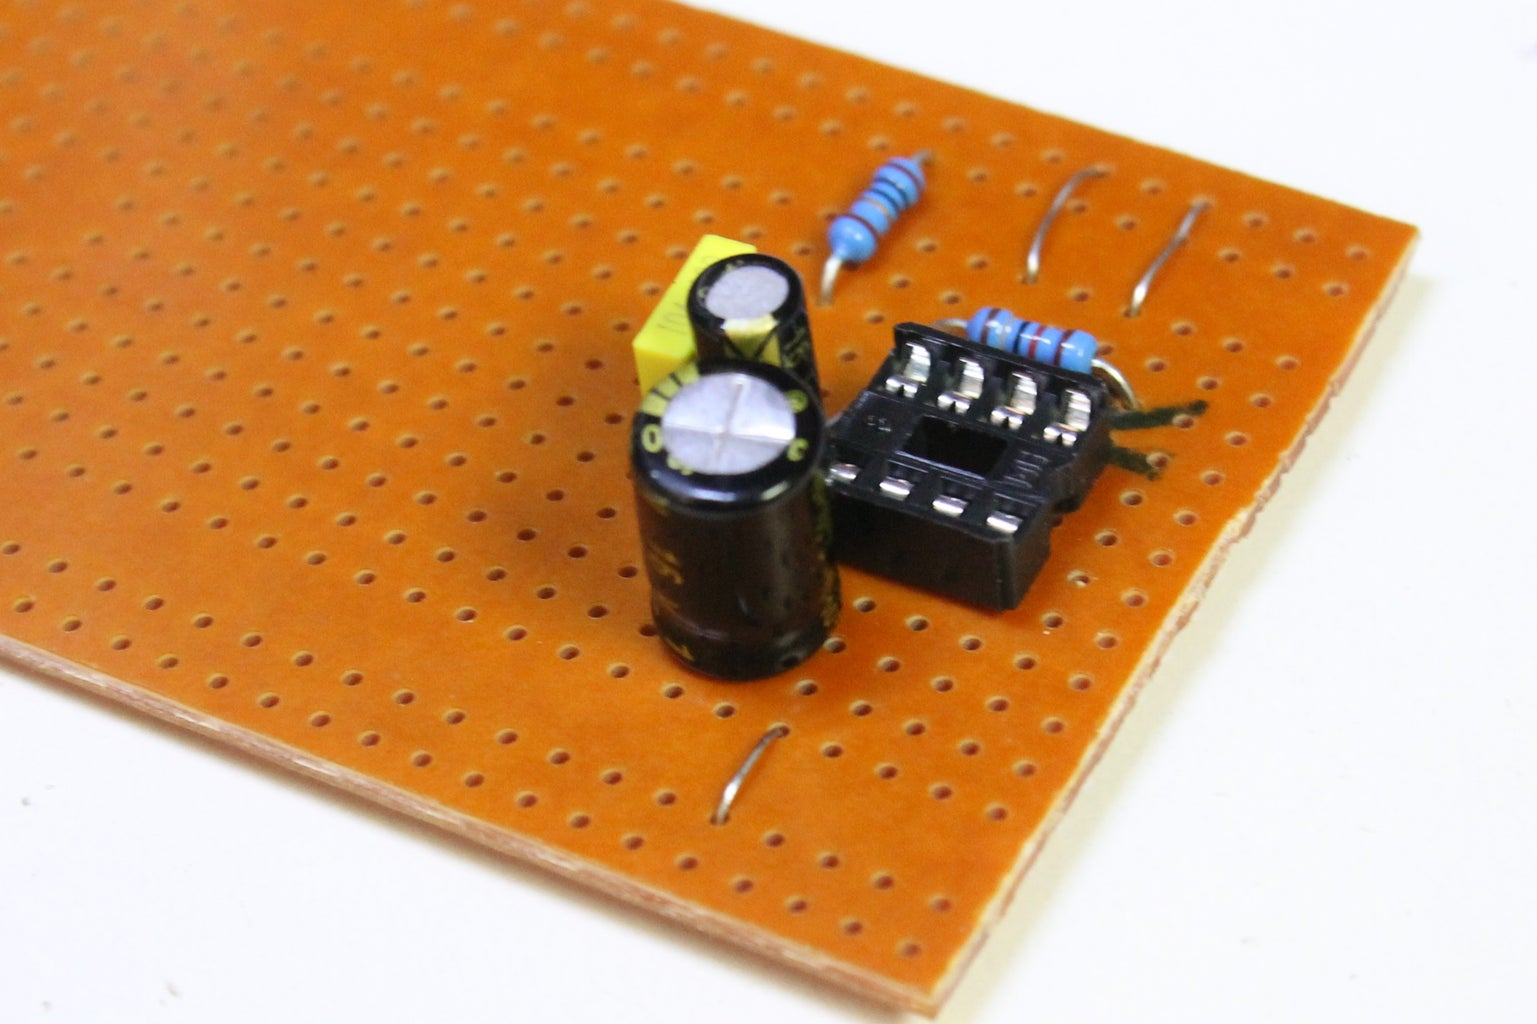 Making the Circuit - Pins 6 & 7 and the Next Channel